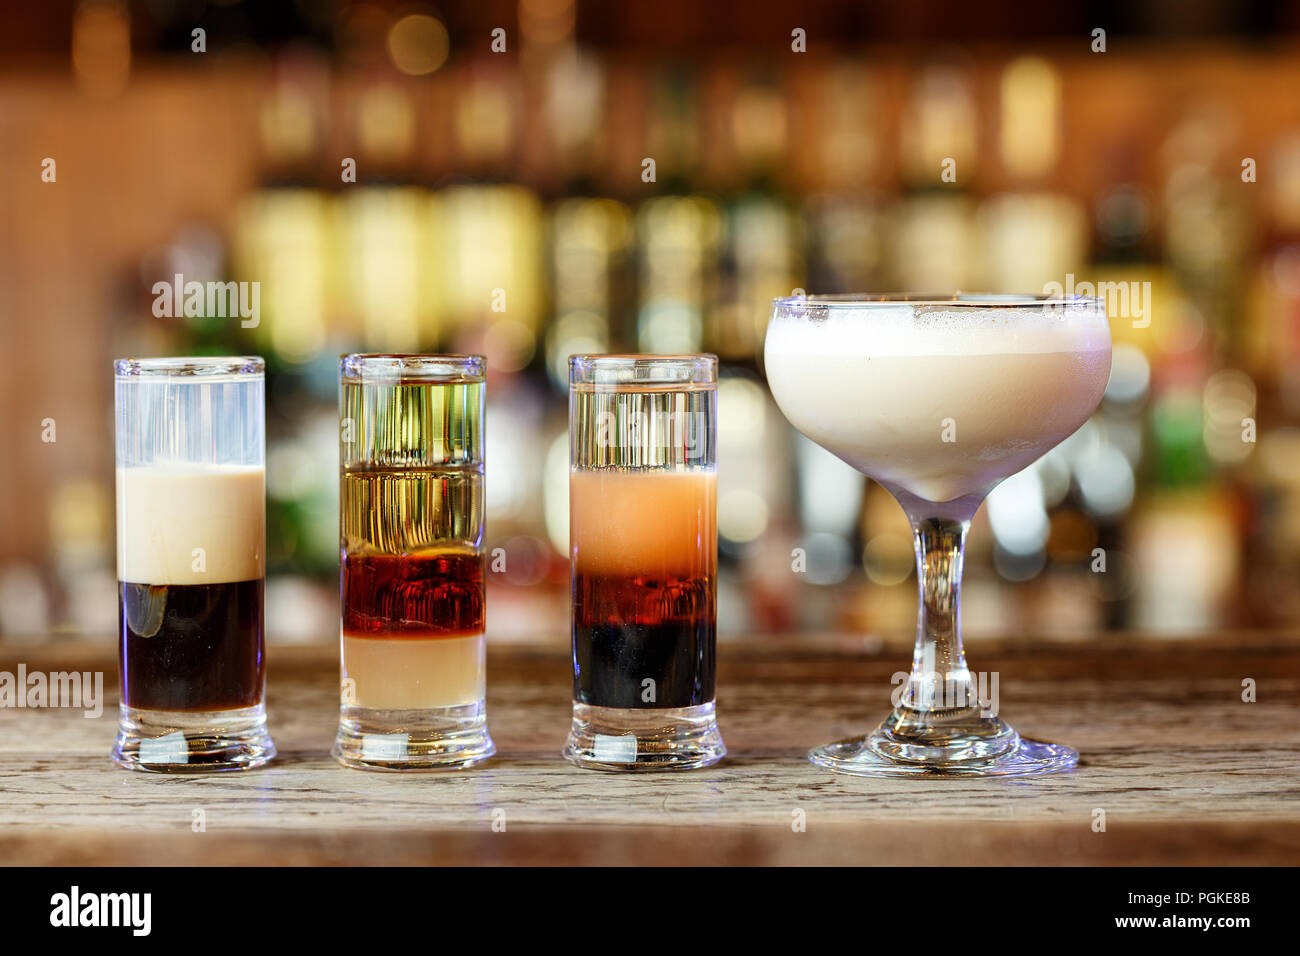 different club cocktails for men and women in different glasses stand on a bar counter on a blurred background of alcohol - Stock Image